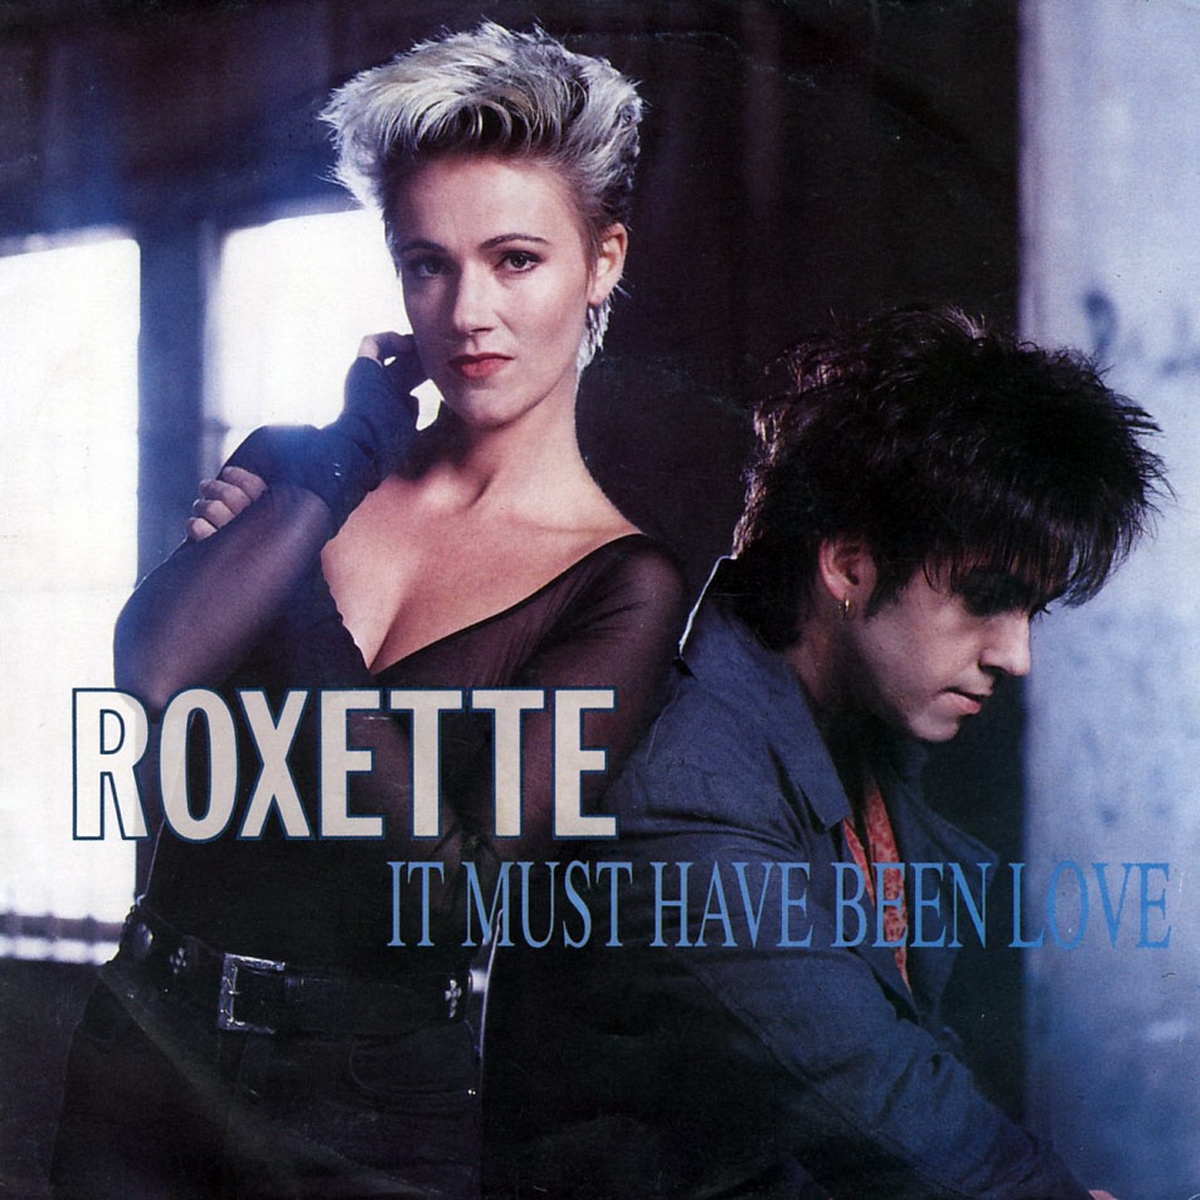 Roxette It Must Have Been Love Video 1990 Imdb